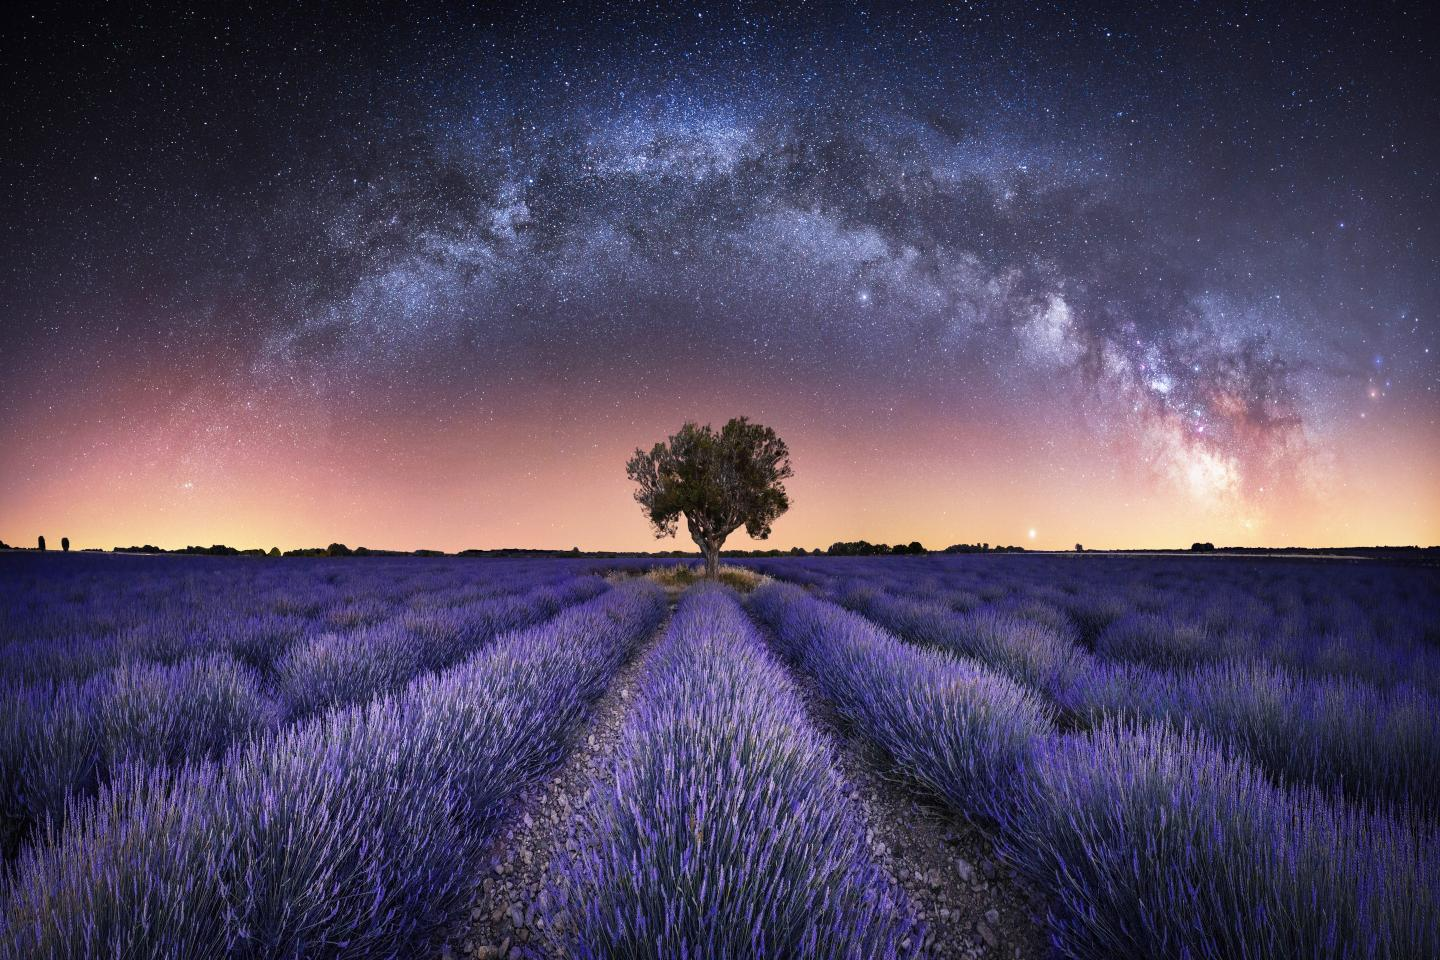 Milky Way stretching over lavender fields in France